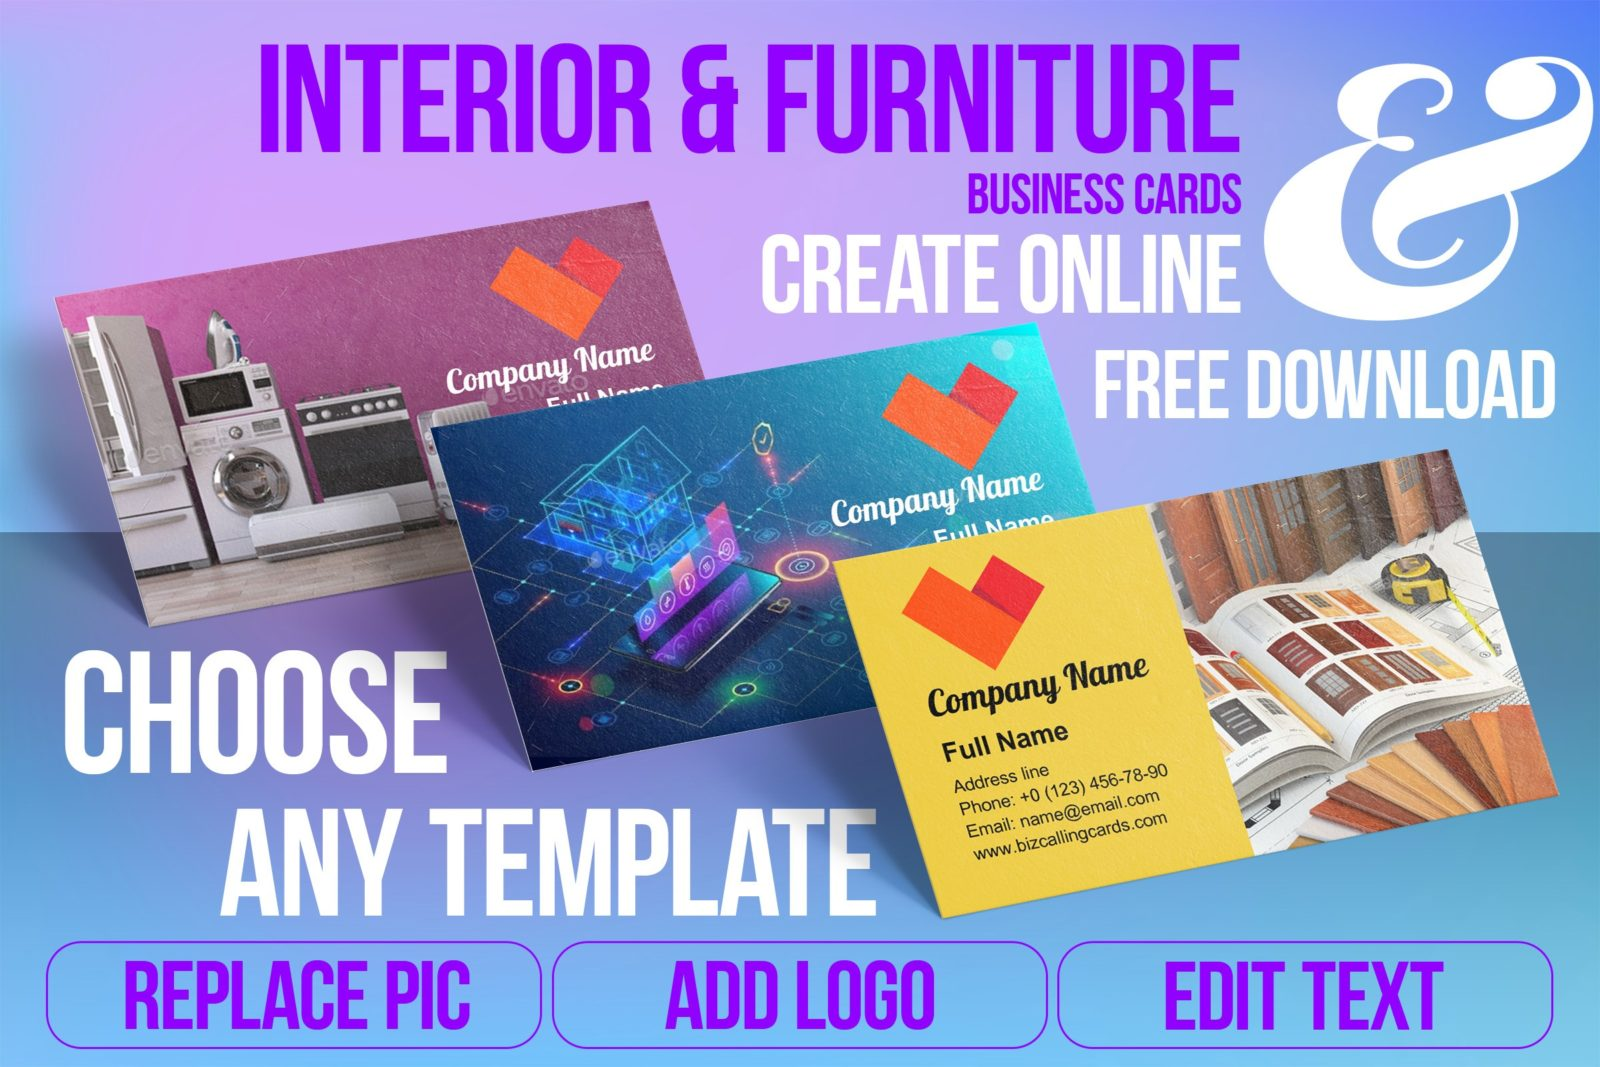 Business Card Templates For Interior & Furniture Free Download